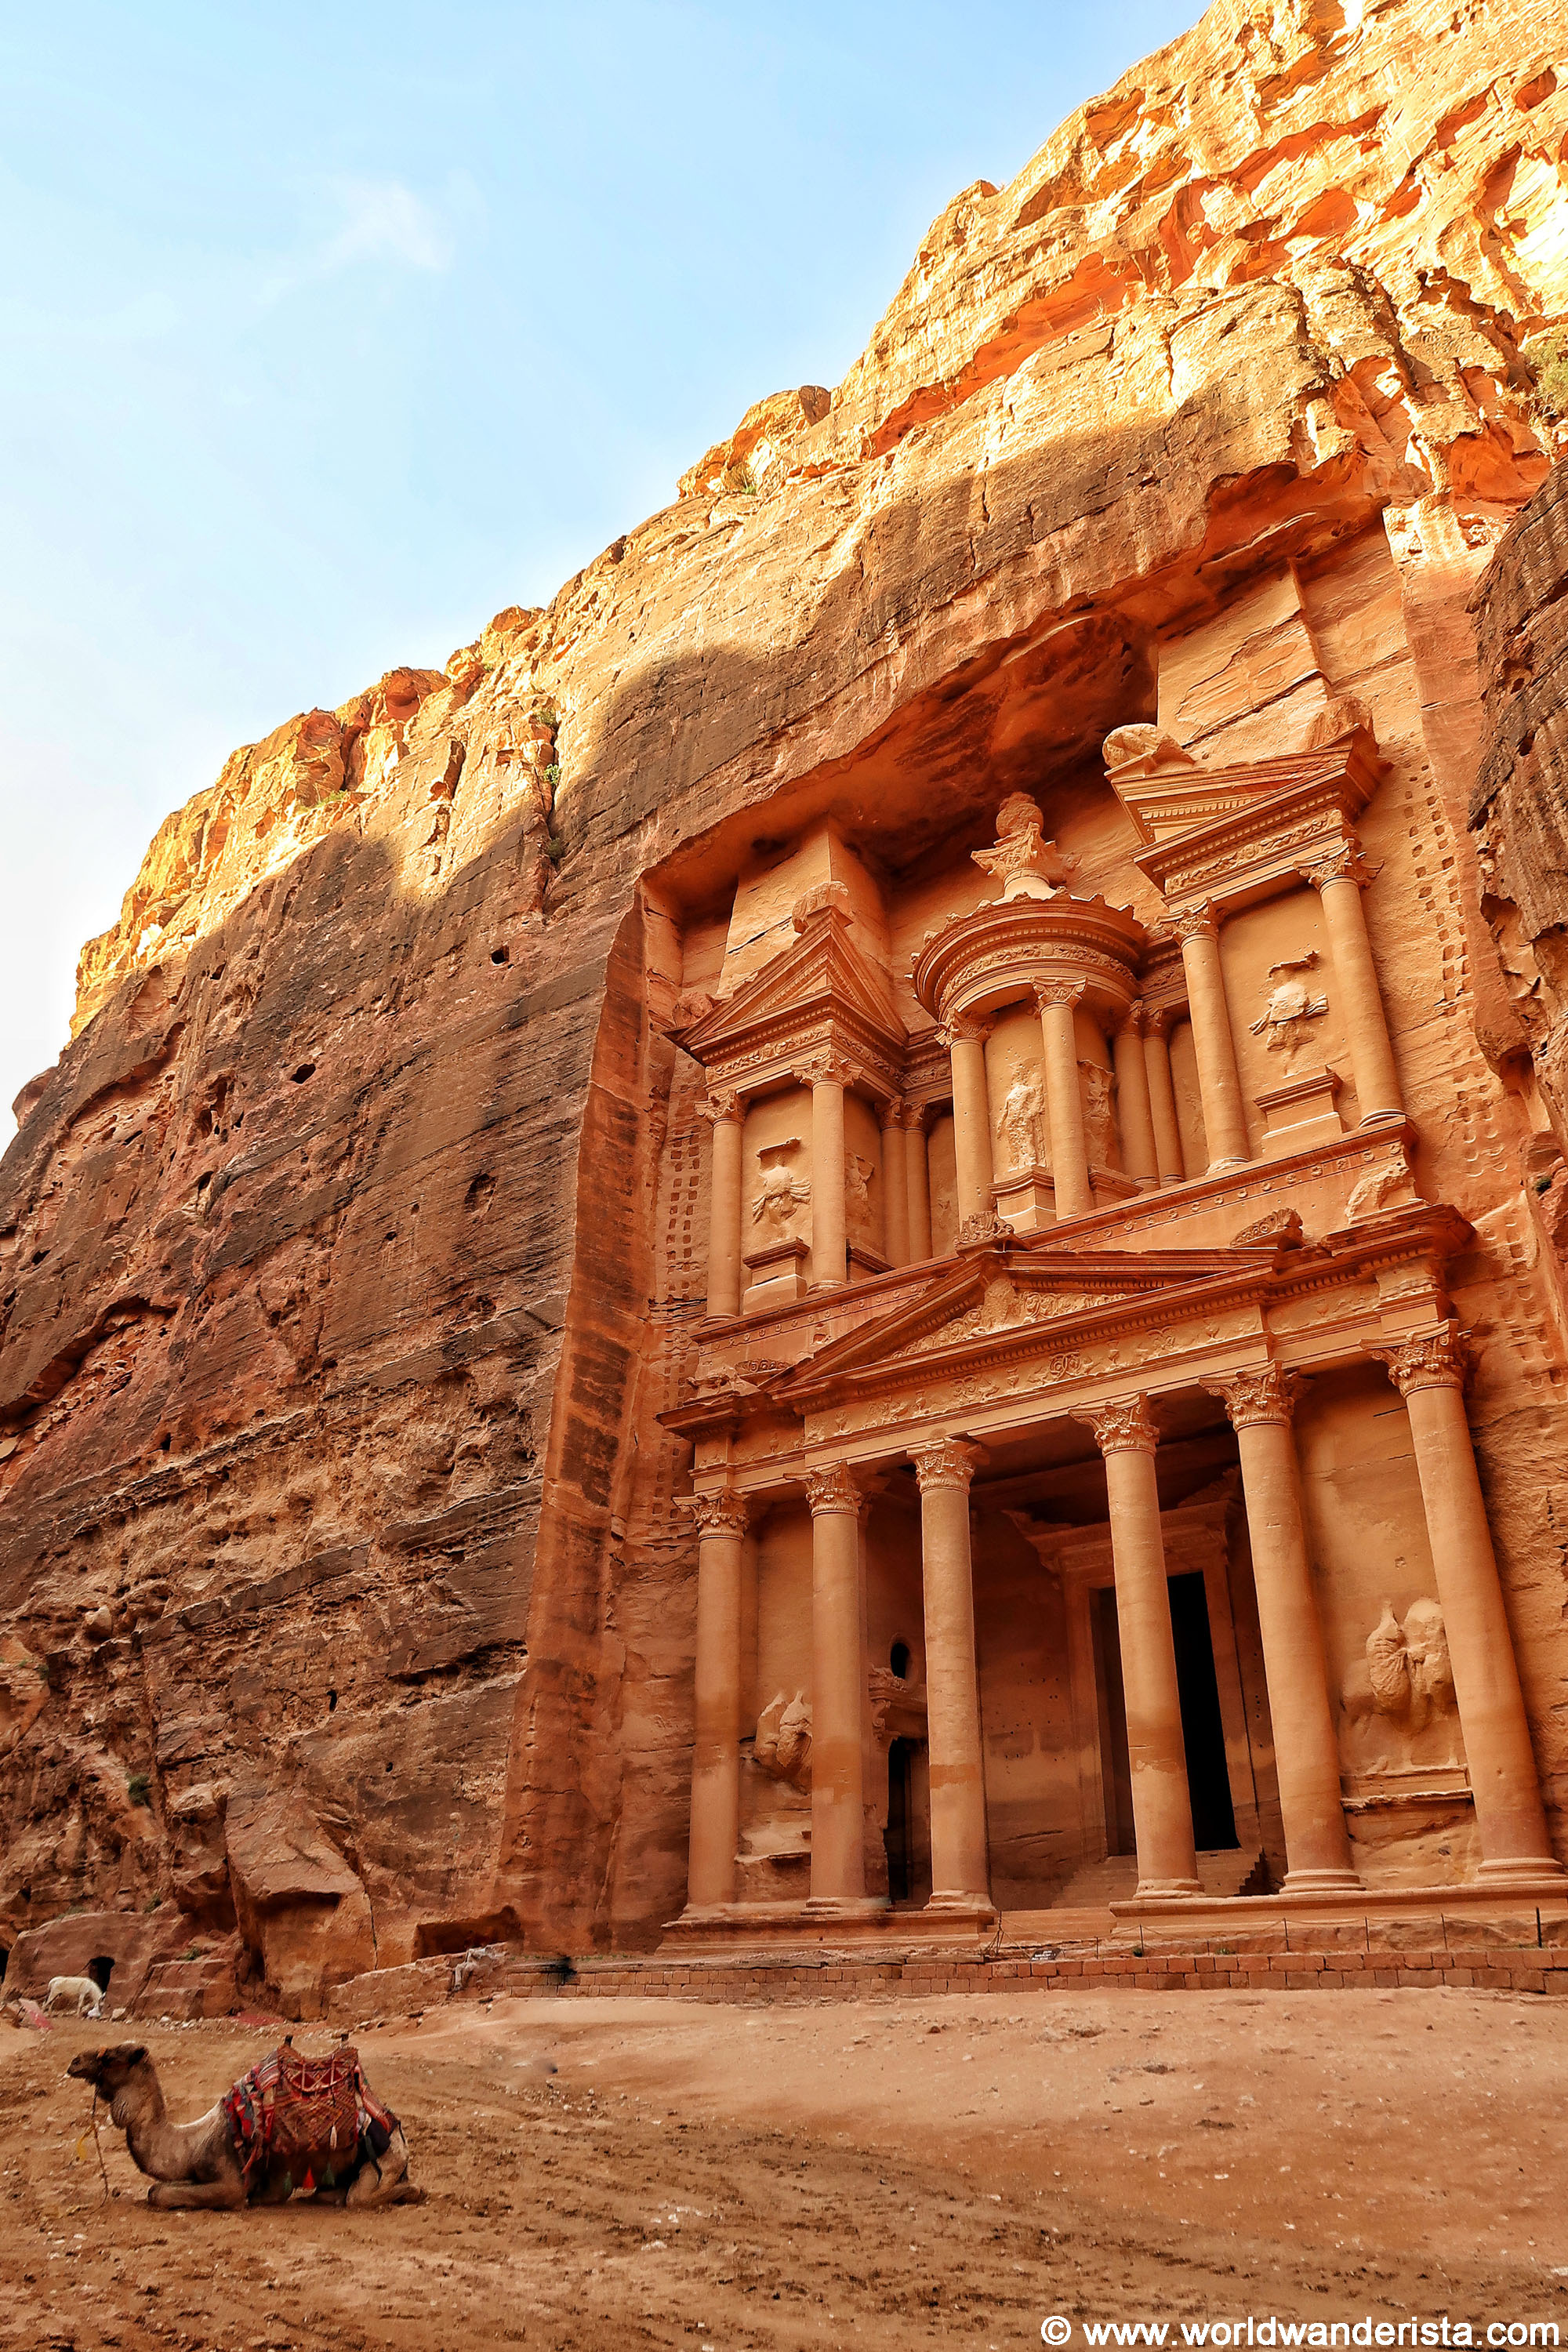 The Best Summer Nail Trends: The Best Views In Petra, The Lost City Of Jordan